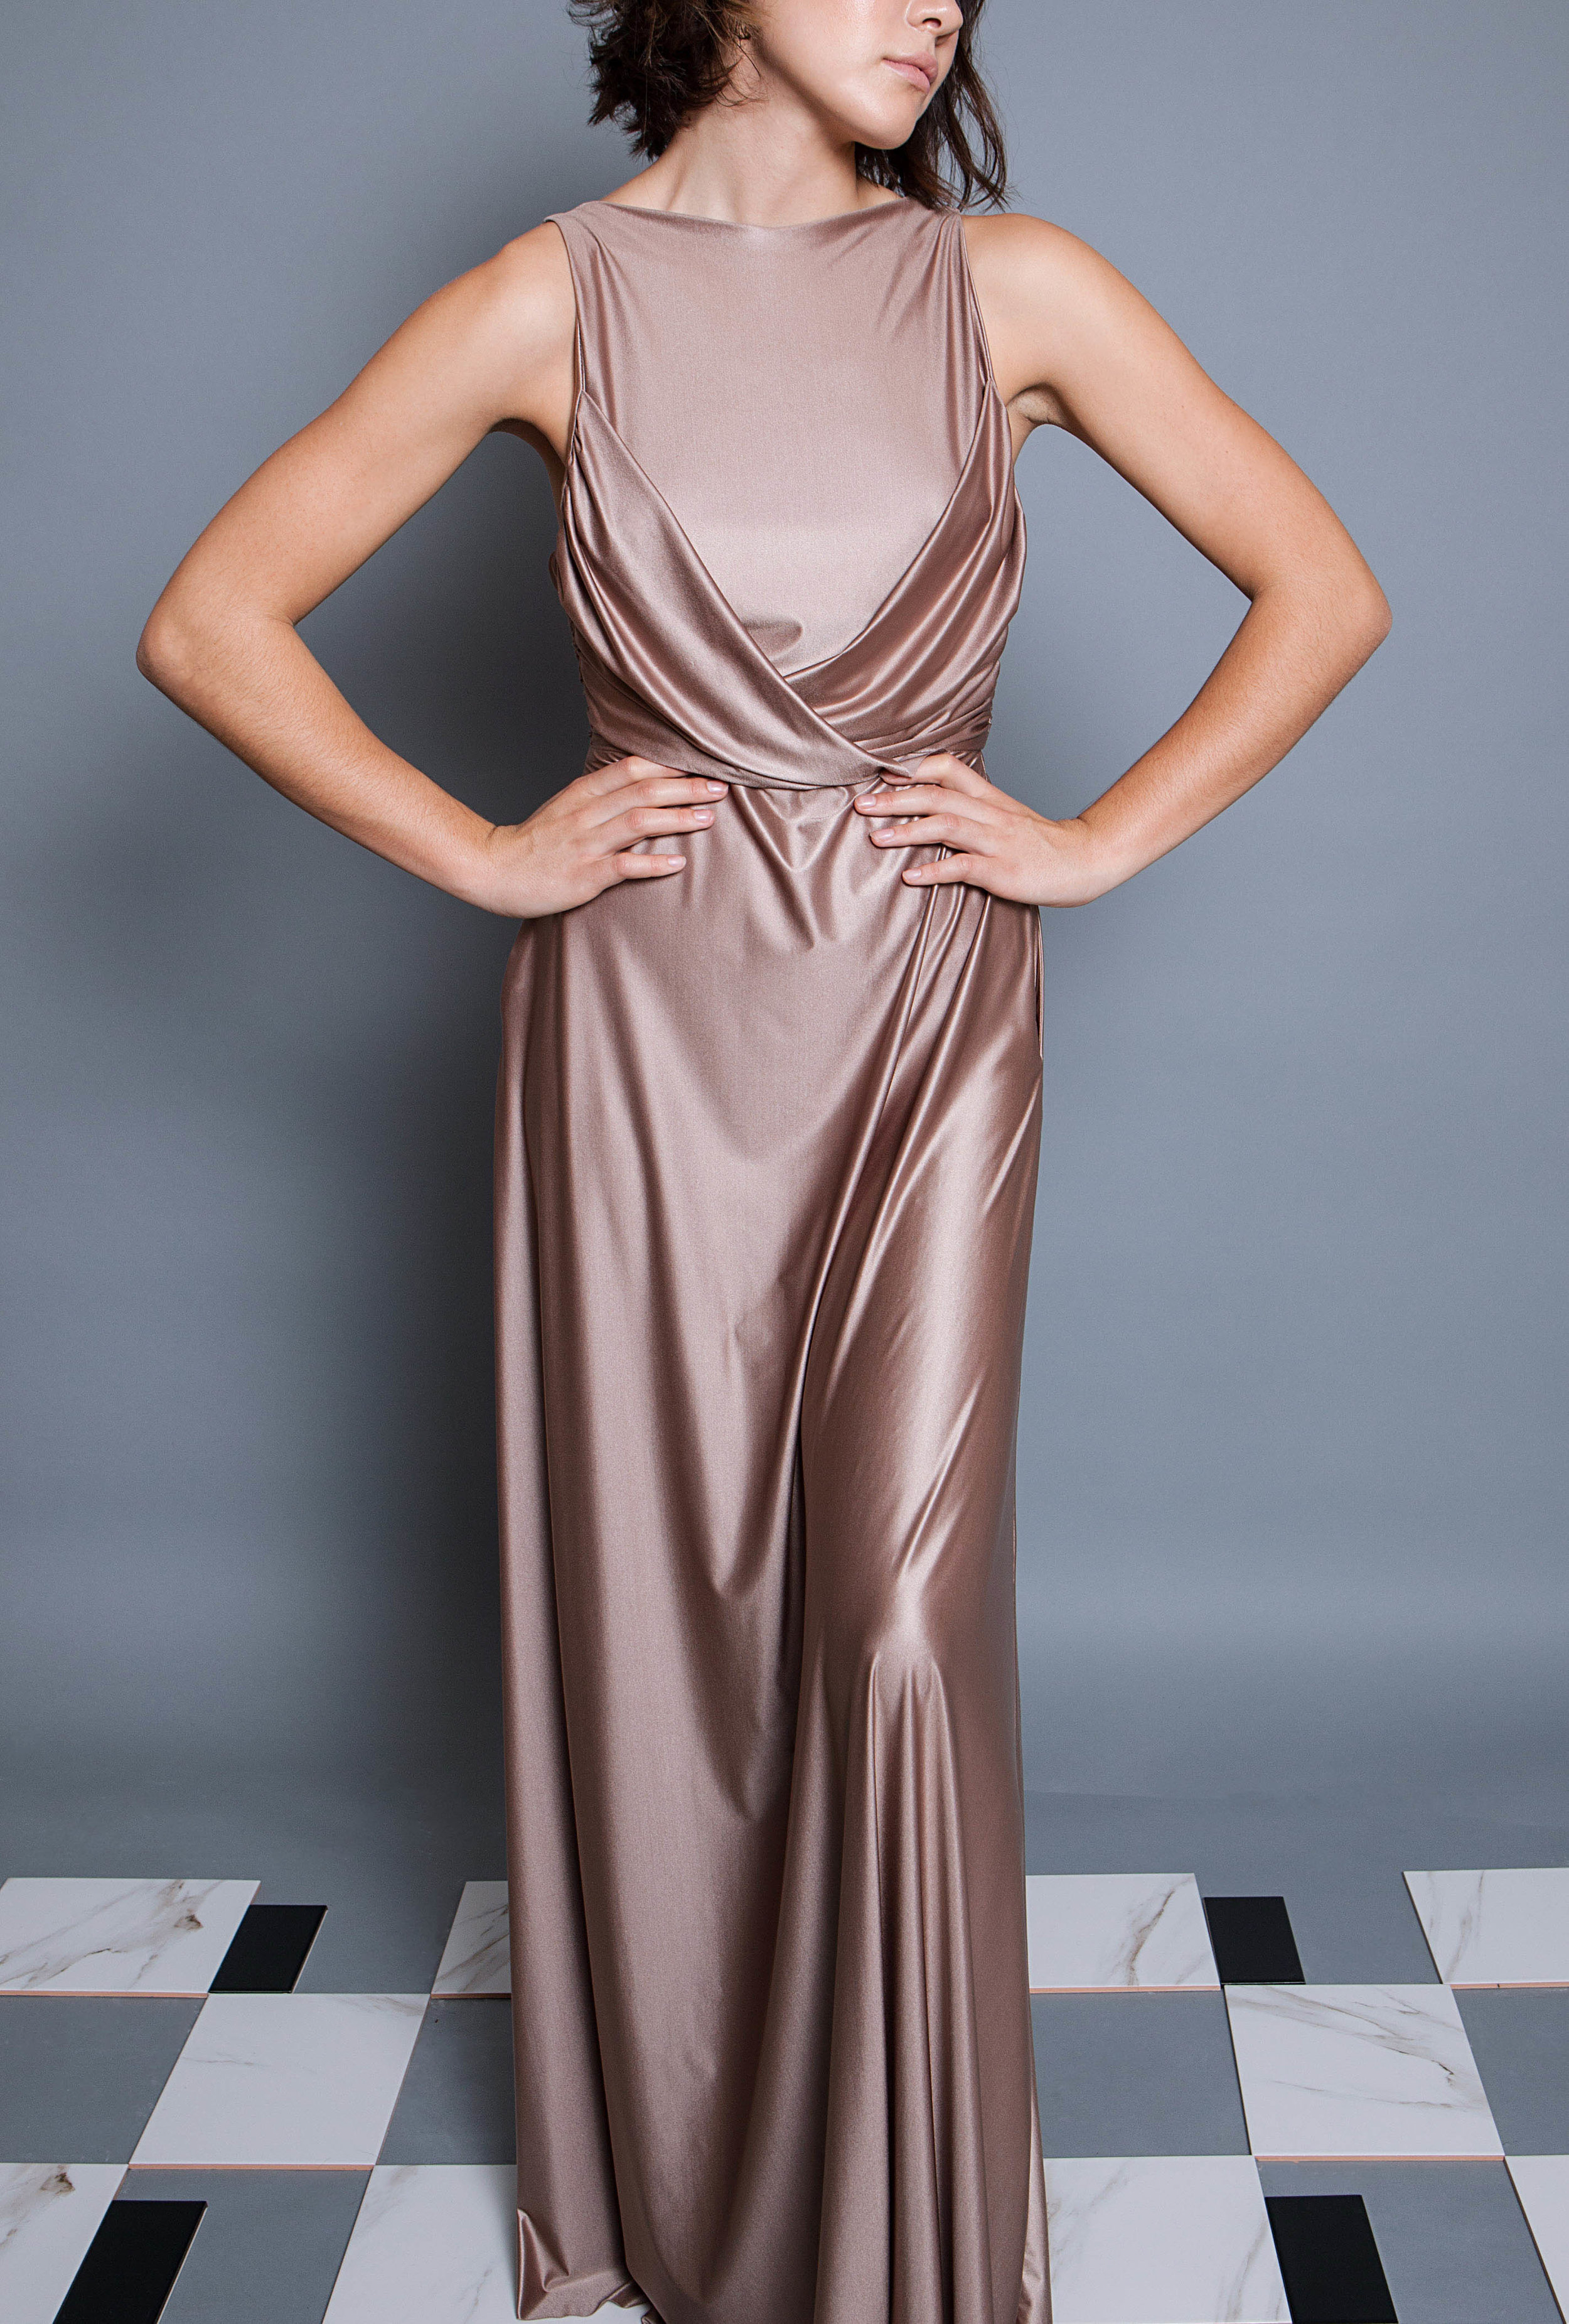 Daydream Gown - The effortless gown...